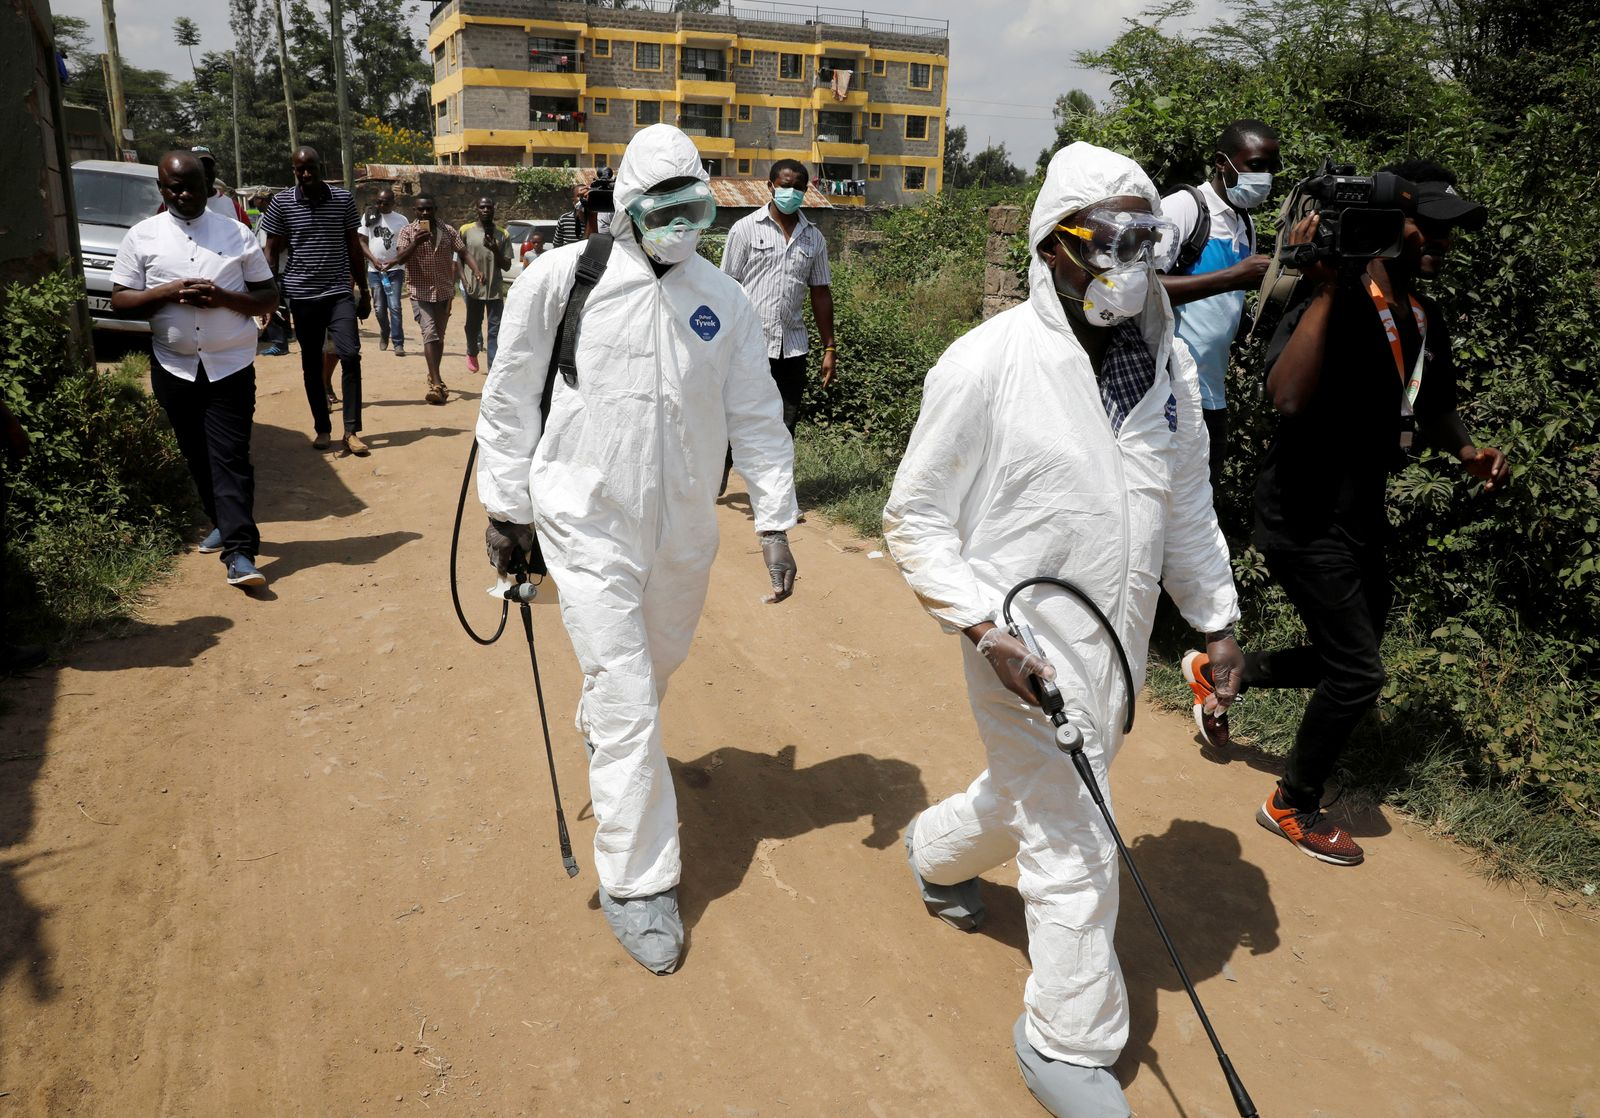 FILE PHOTO: Kenyan health workers dressed in protective suits walk after disinfecting the residence where Kenya's first confirmed coronavirus patient was staying, in the town of Rongai